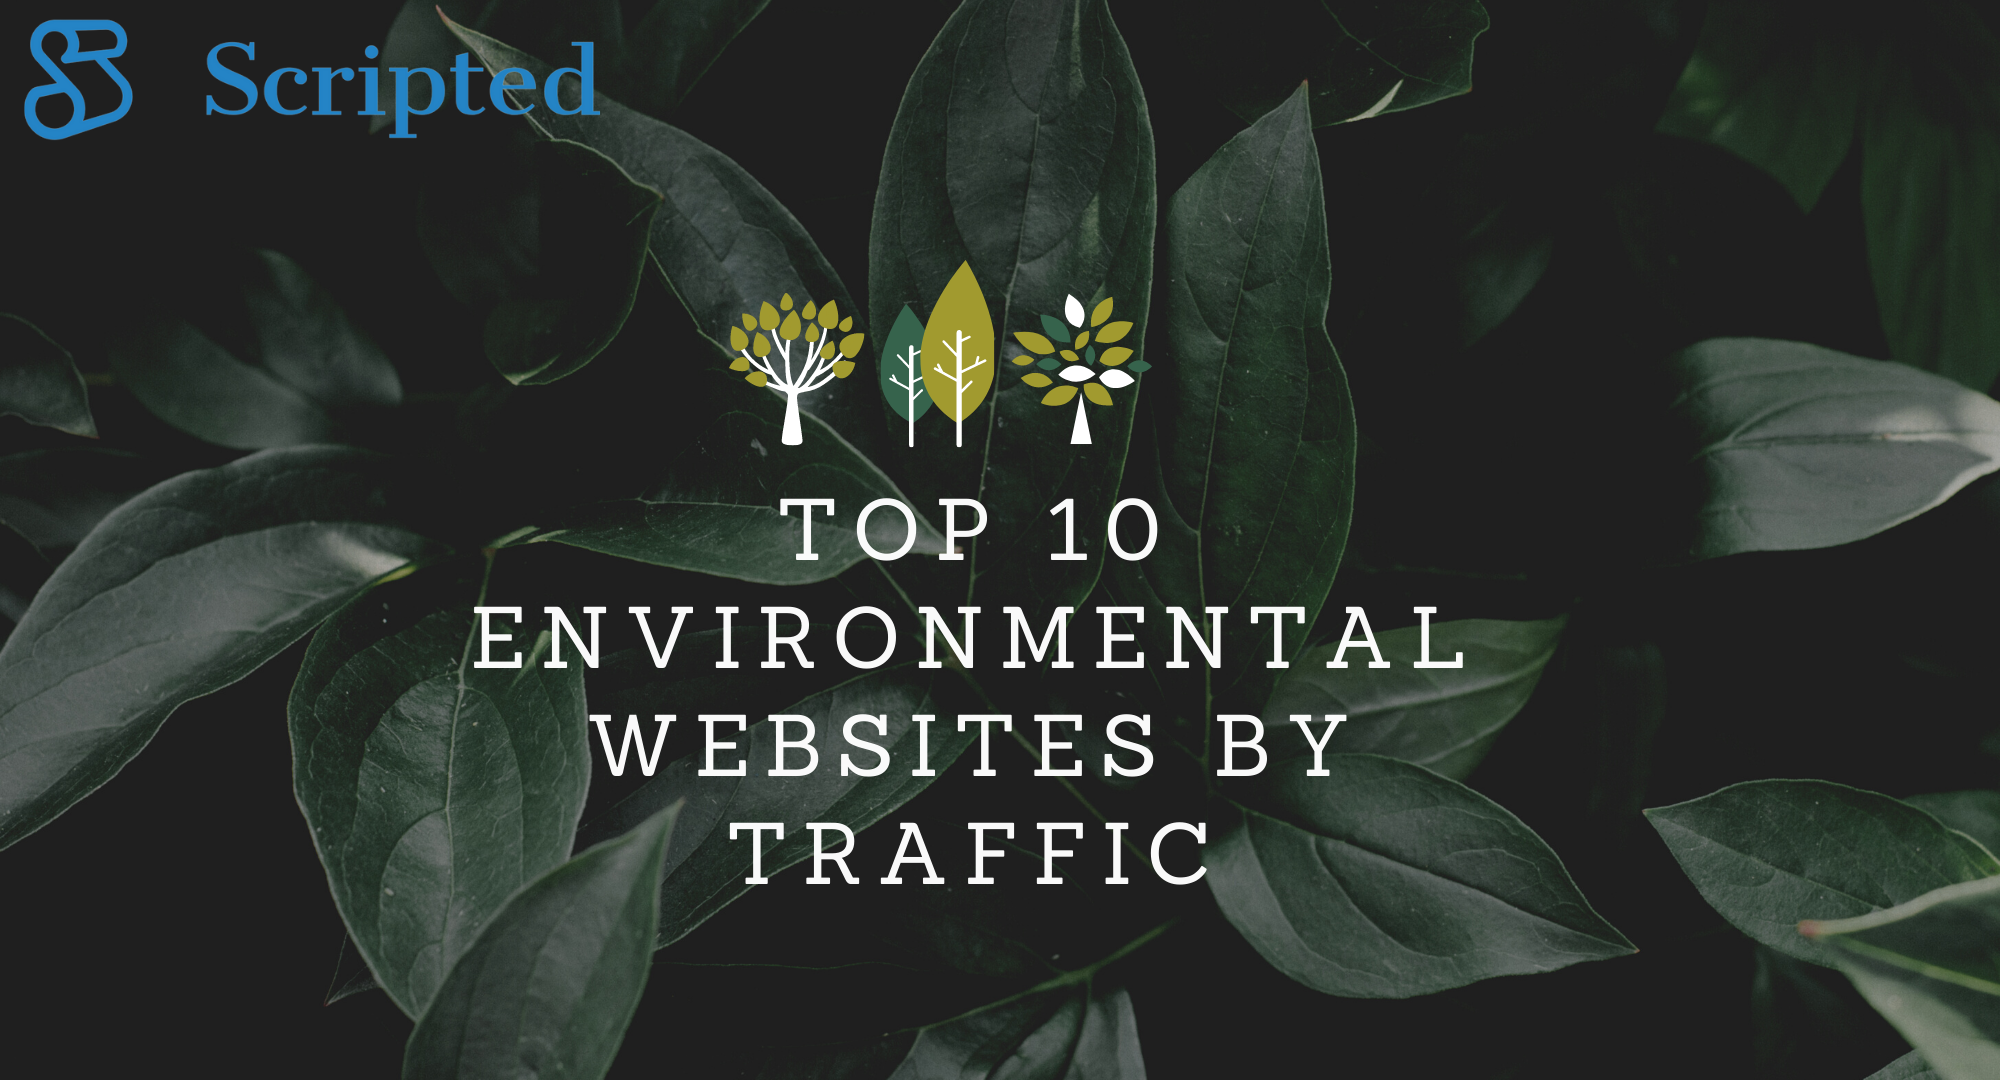 Top 10 Environmental Websites By Traffic